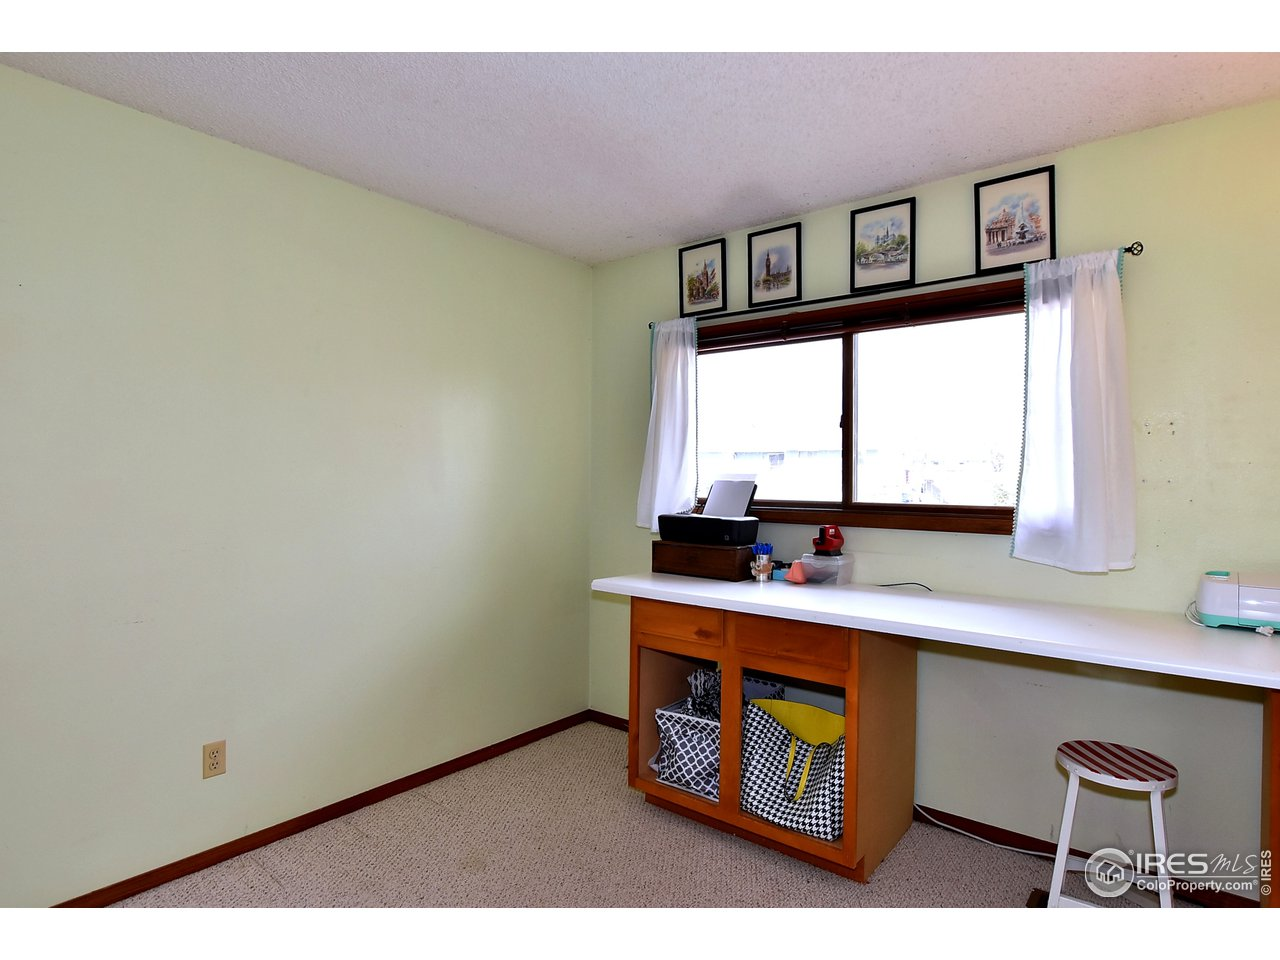 2nd Bedroom/ Office (shelves not attached)